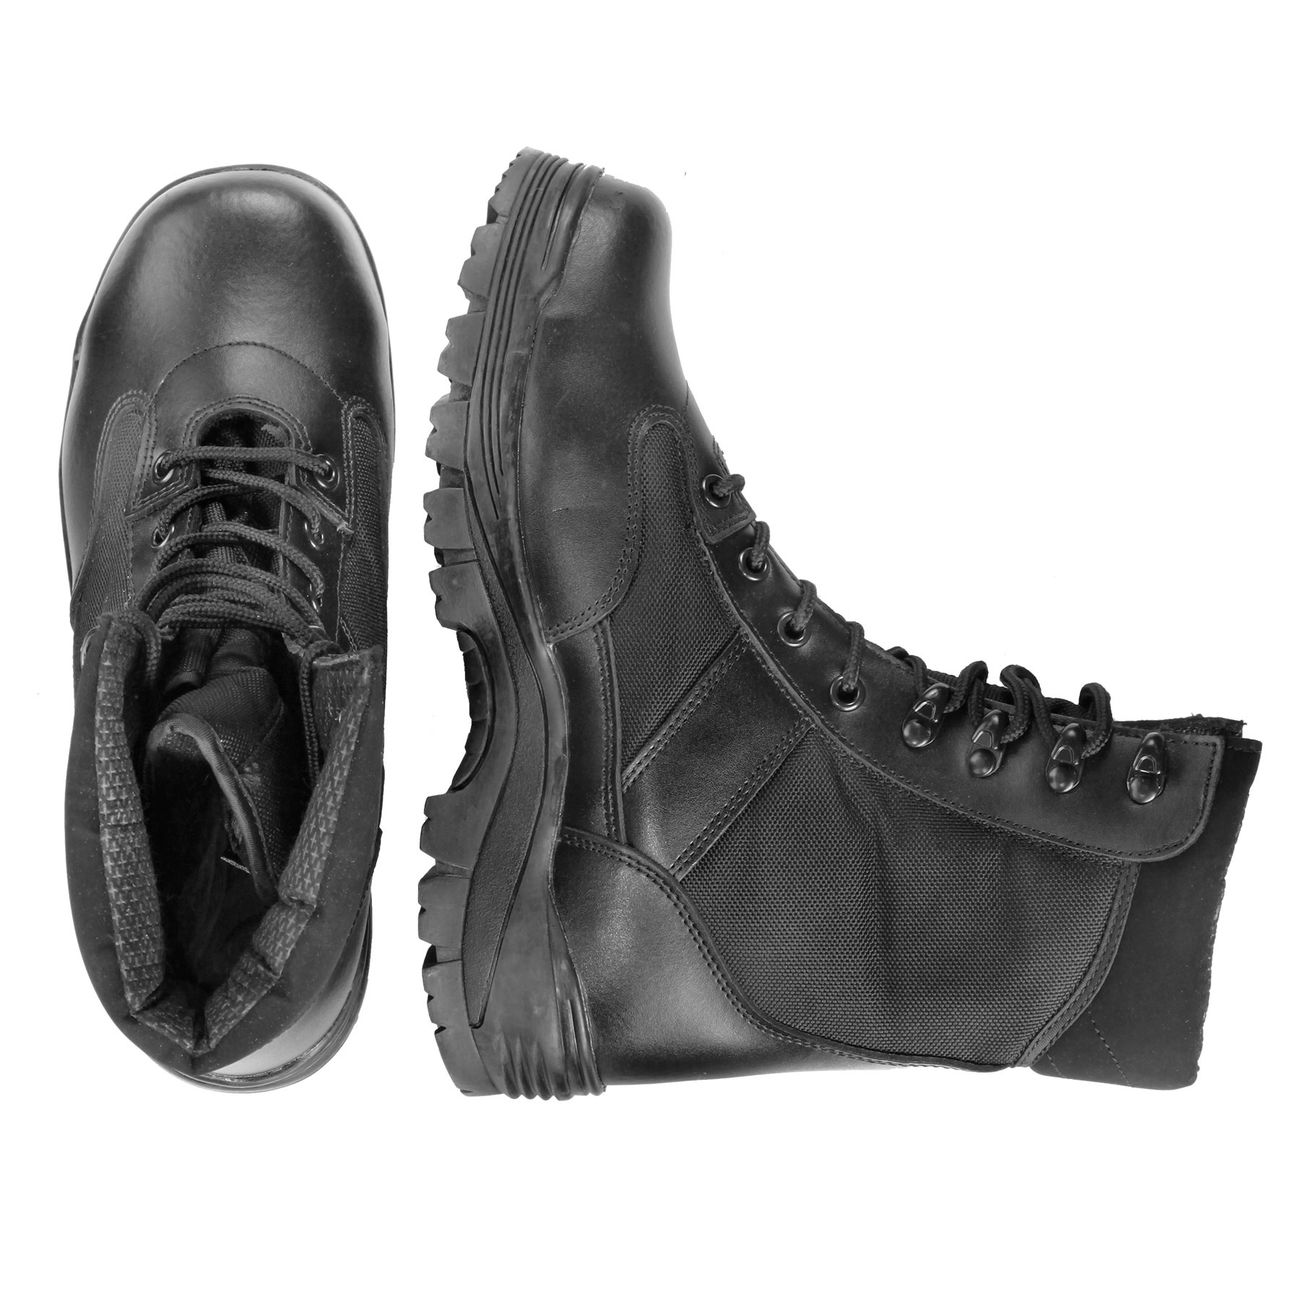 Security Stiefel Boots 8-Loch Mil-Tec 3